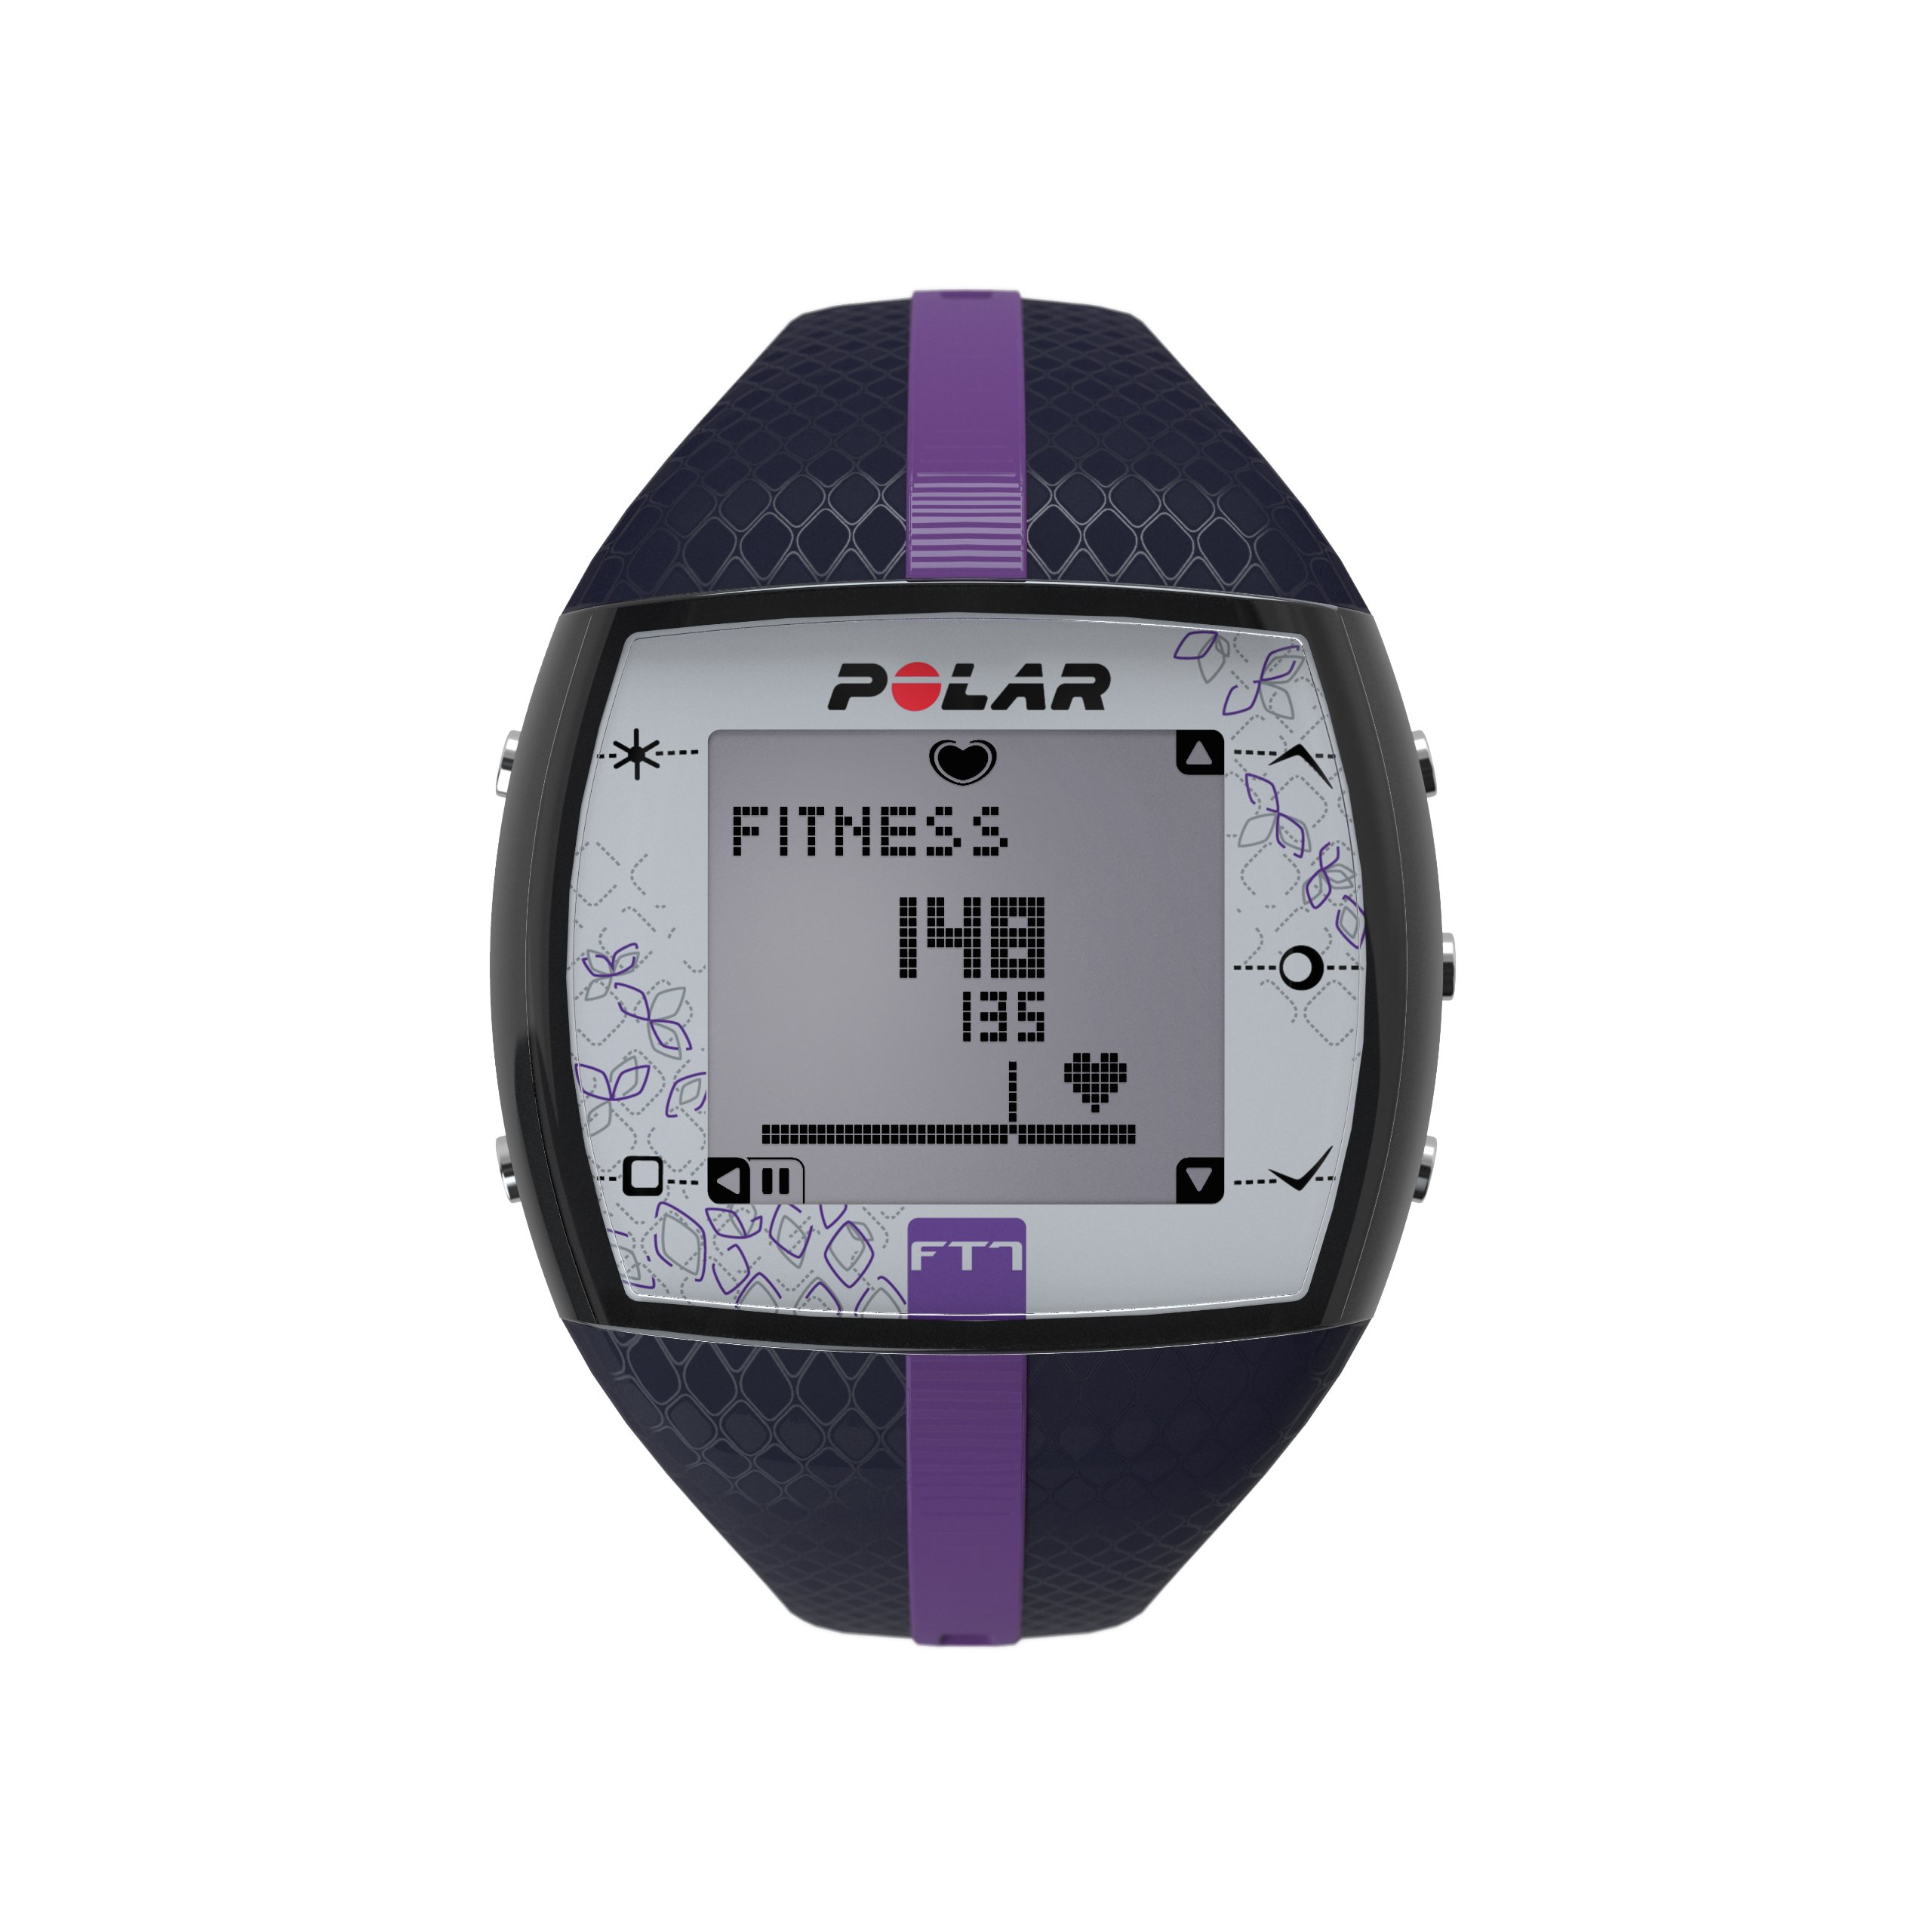 Polar FT7 Heart Rate Monitor Workout Watch, Blue/Lilac by POLAR (Image #2)